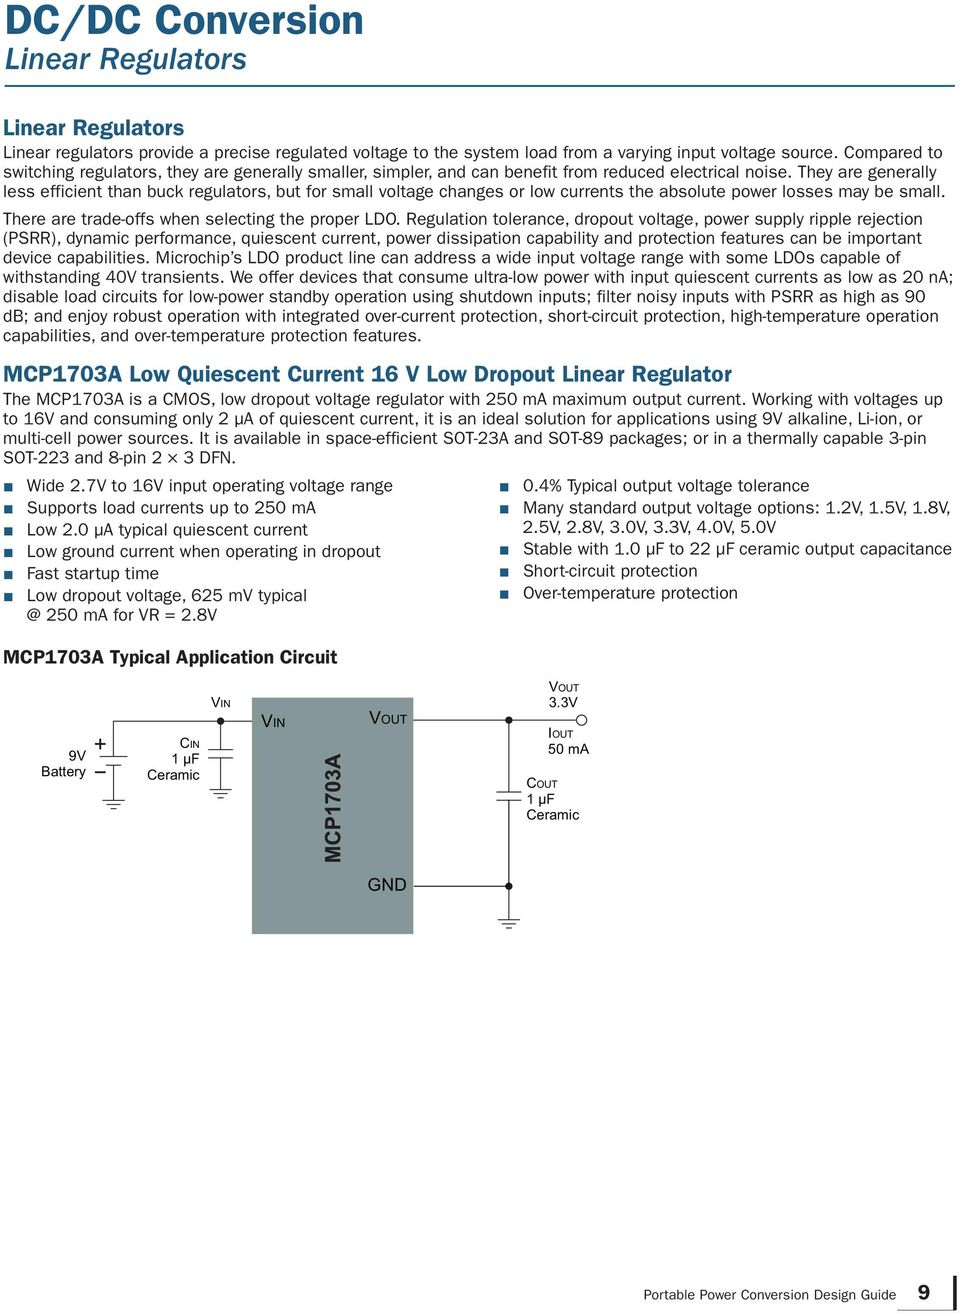 Portable Power Conversion Design Guide Pdf Efficient Regulated Stepup Converter Circuit Diagram Tradeofic They Are Generally Less Than Buck Regulators But For Small Voltage Changes Or Low 10 Dc